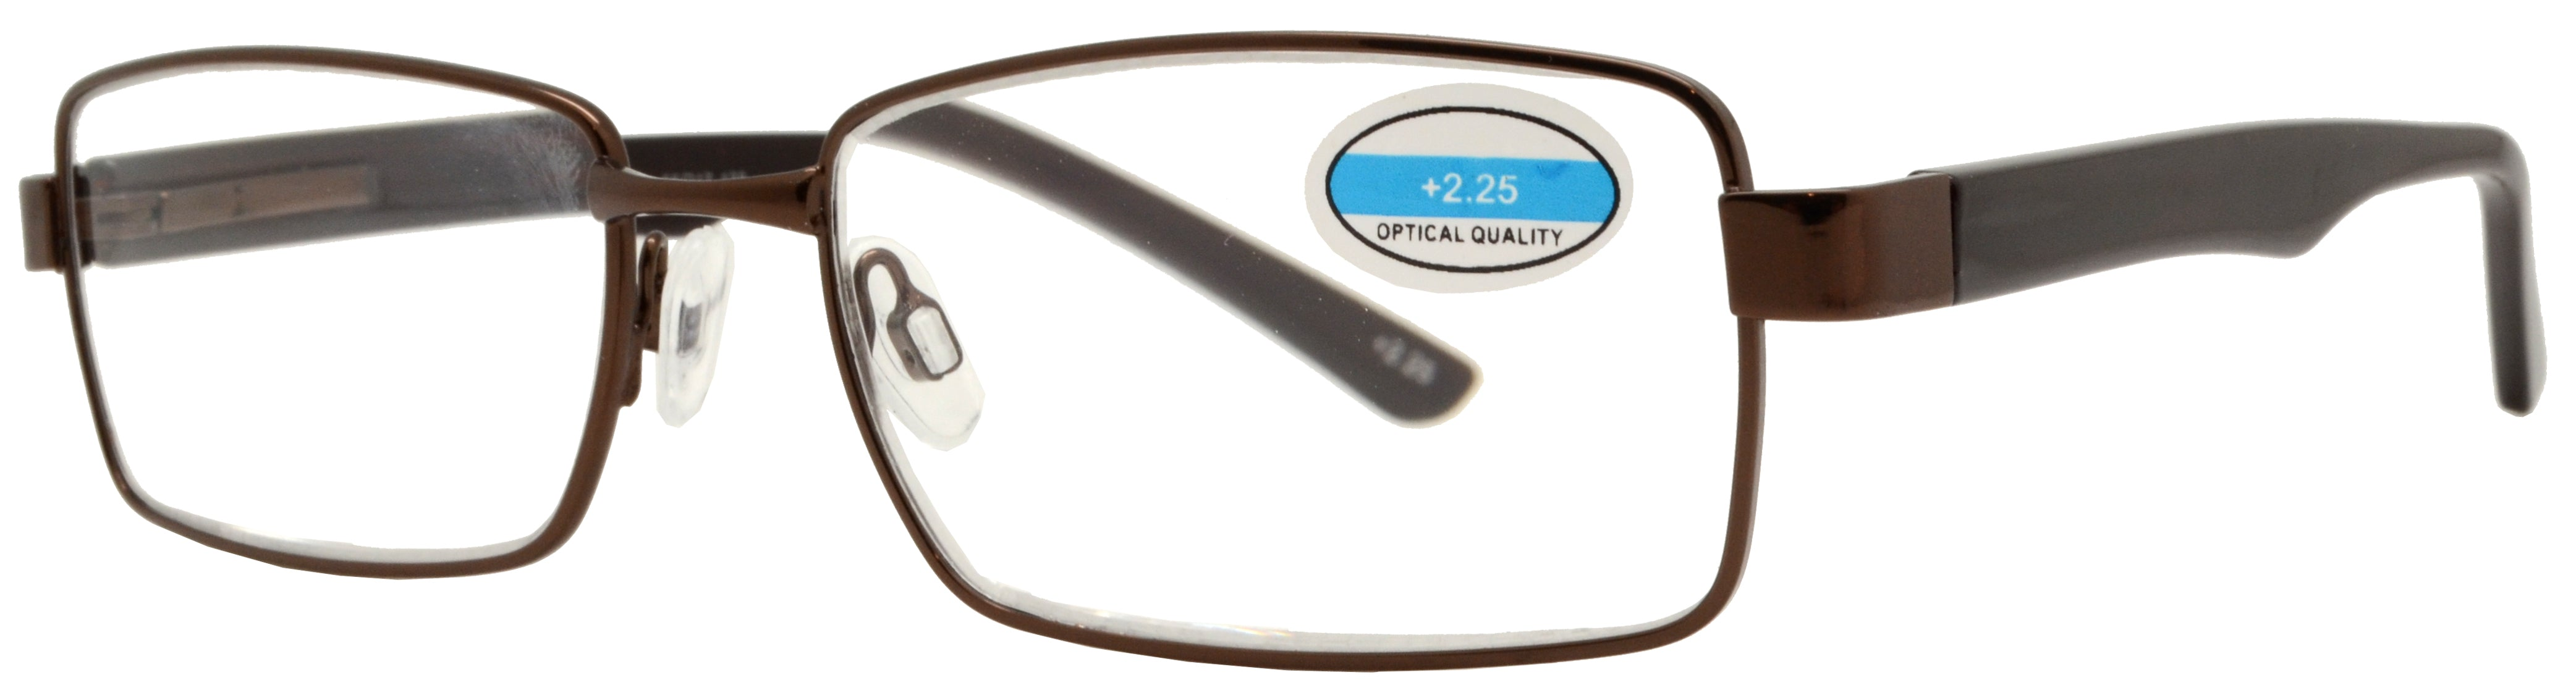 RS 1206 - Rectangular Metal Reading Glasses